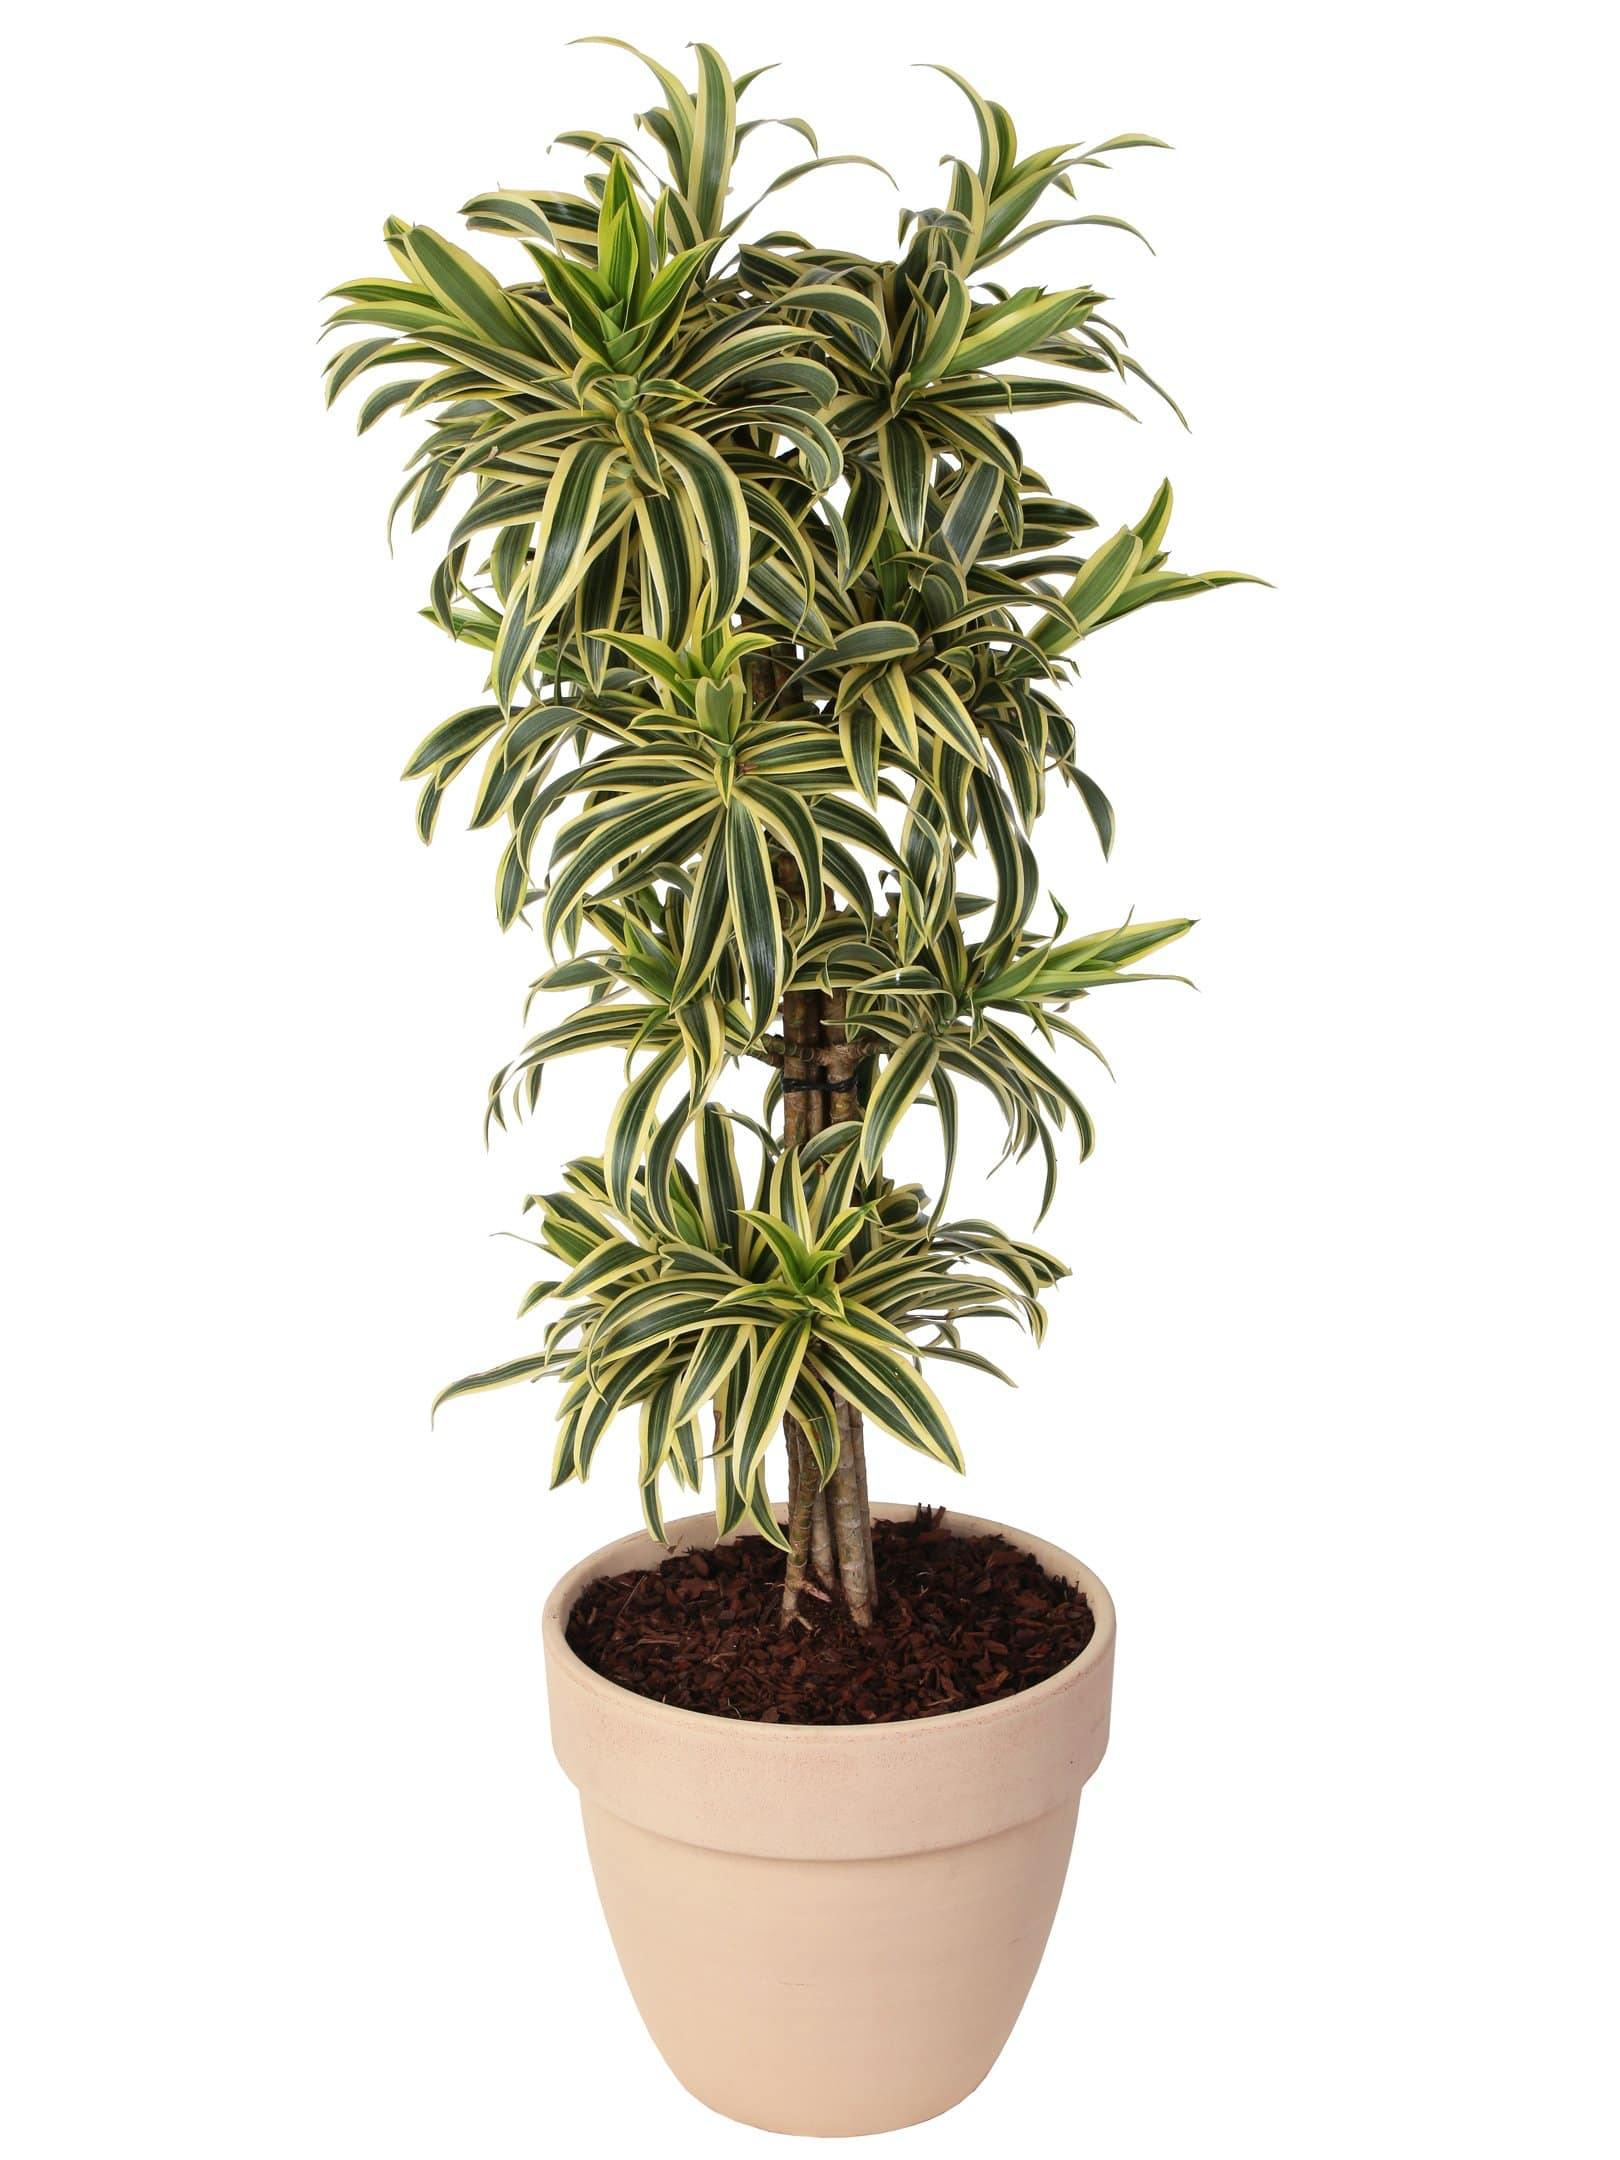 Dracaena Reflexa Pleomele Song of India in vaso terracotta altezza 120 cm. -Casita Hermosa